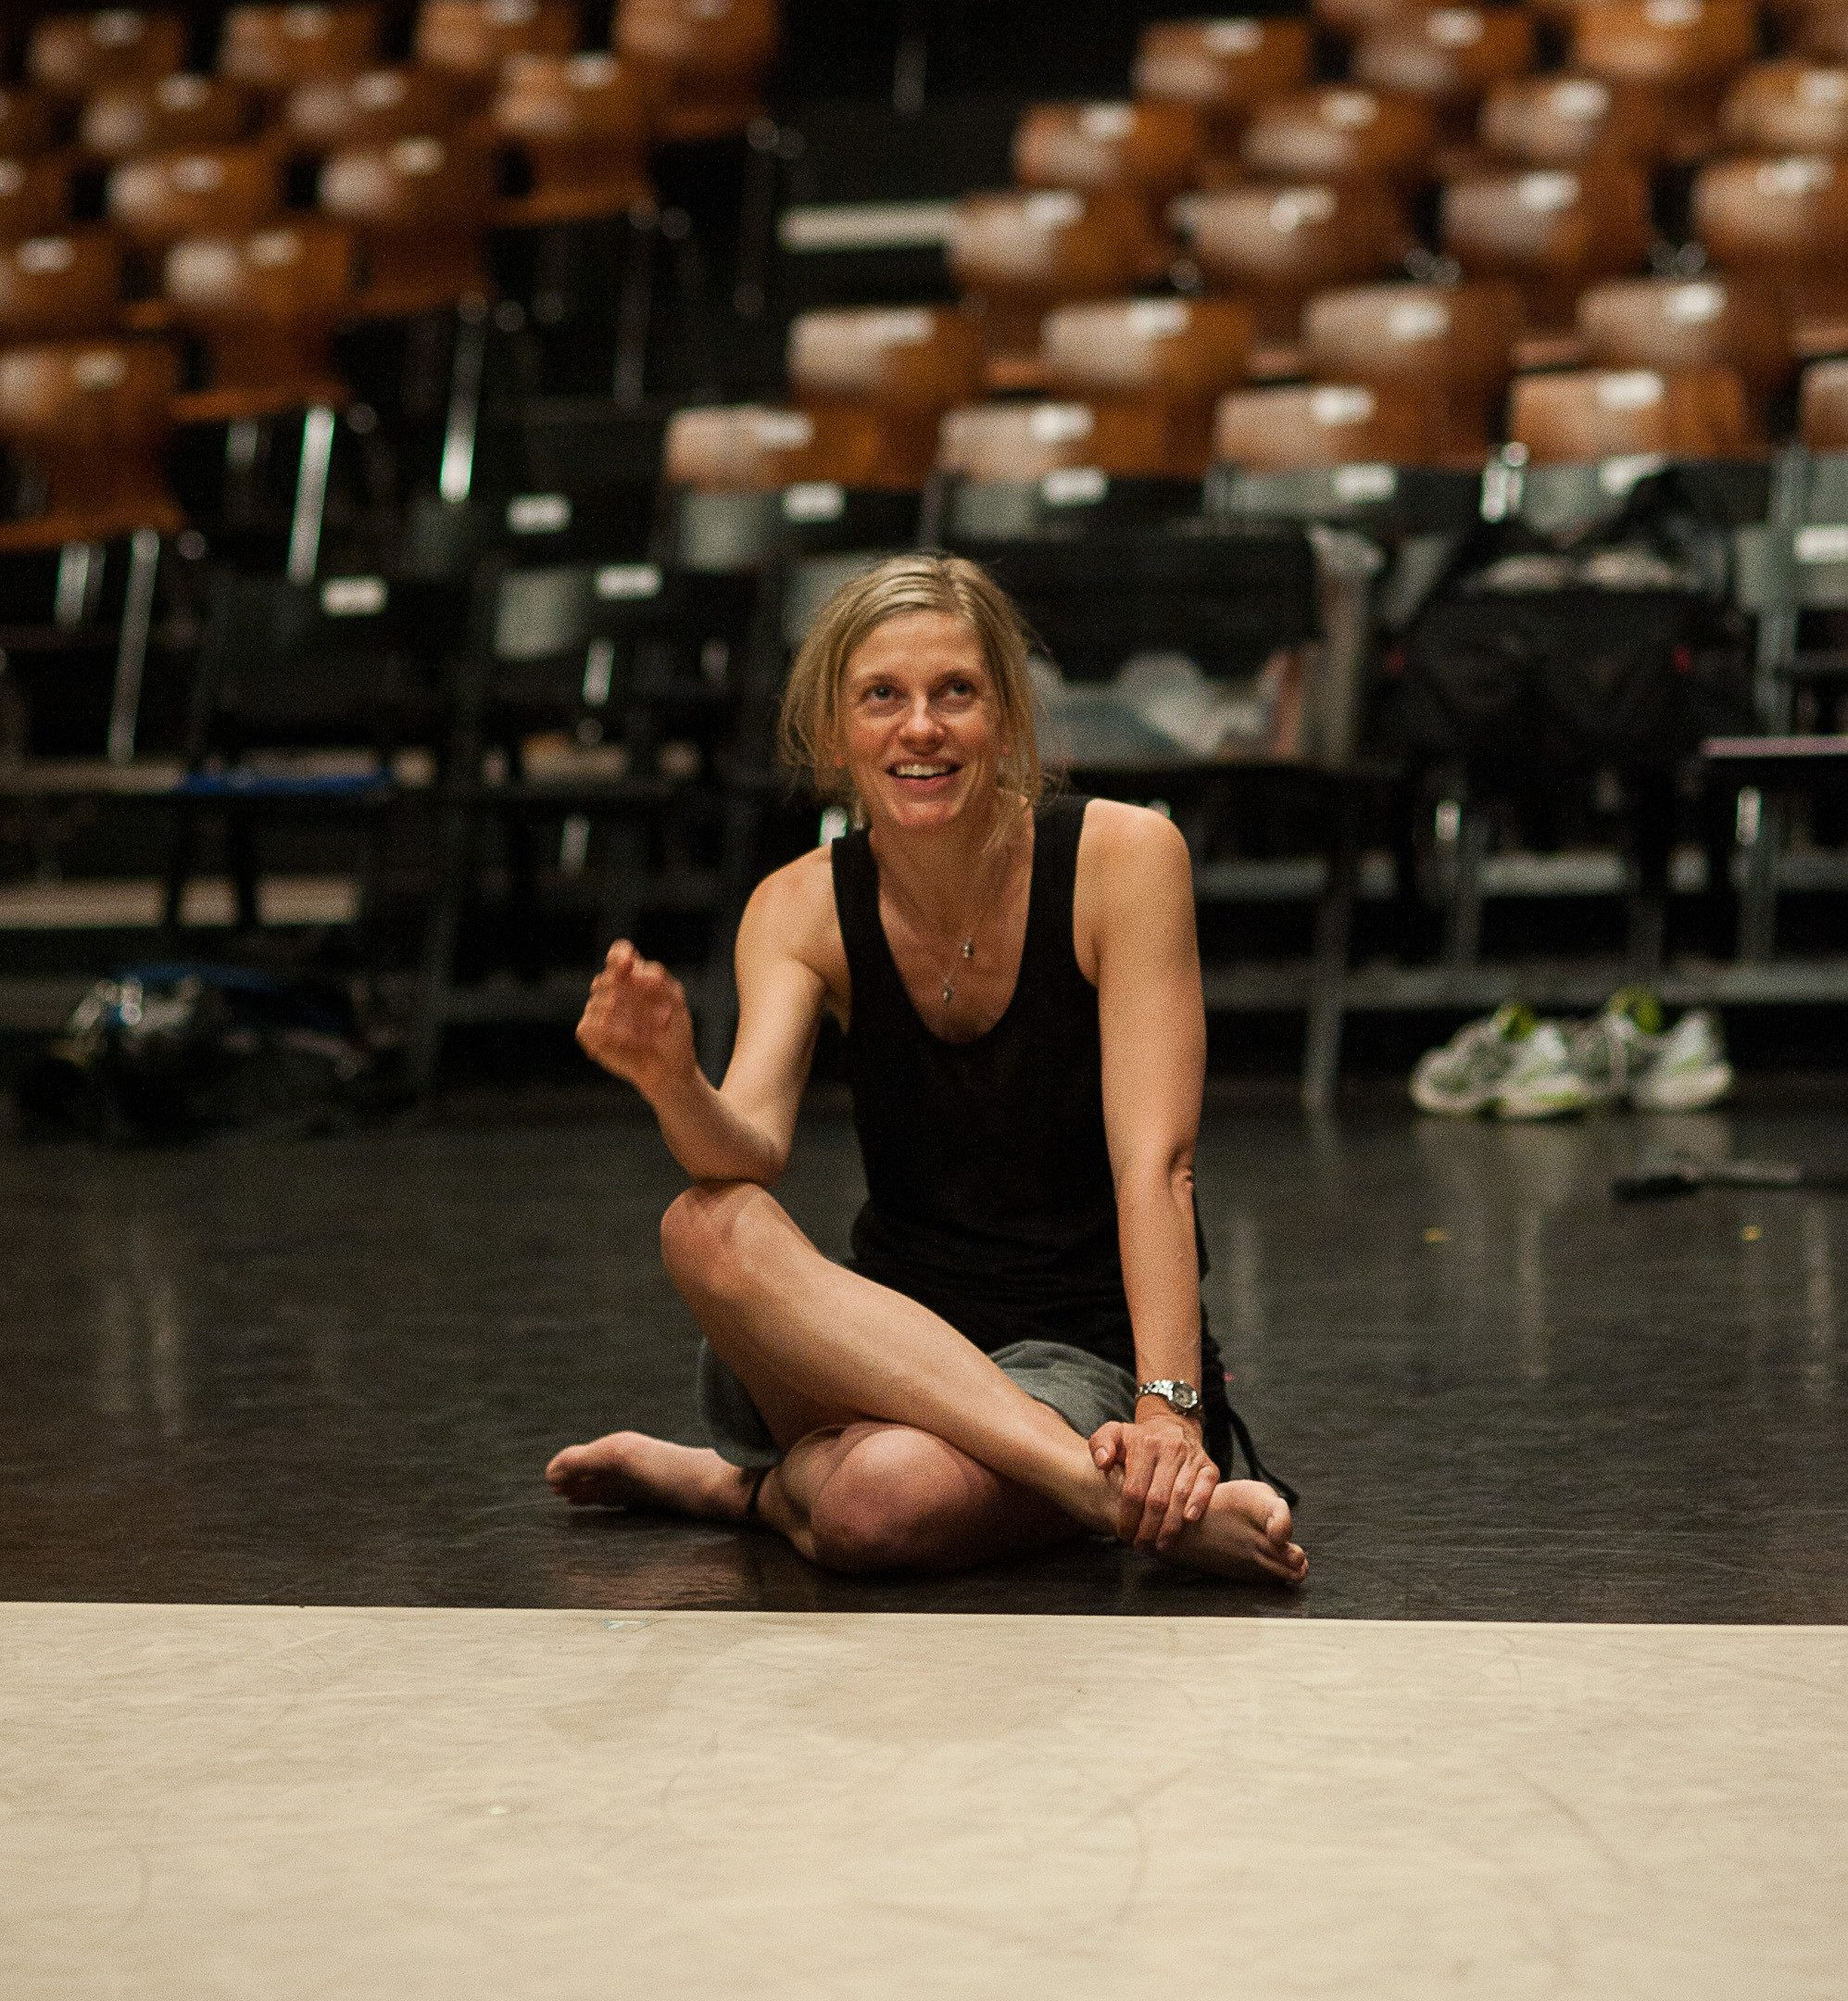 Ruth Leon recommends…Crystal Pite's ballet Body & Soul at Jacob's Pillow